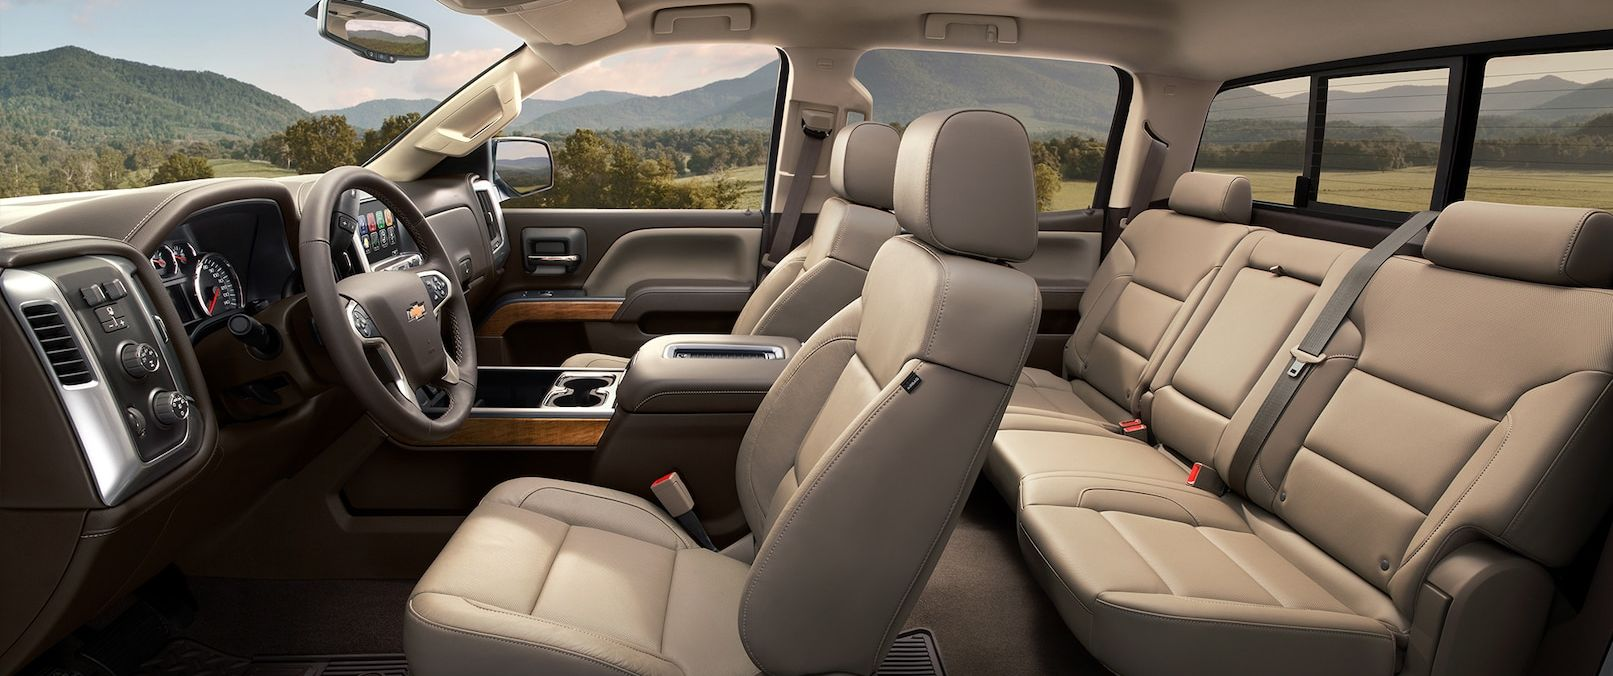 Luxurious Seating in the 2019 Chevrolet Silverado 1500